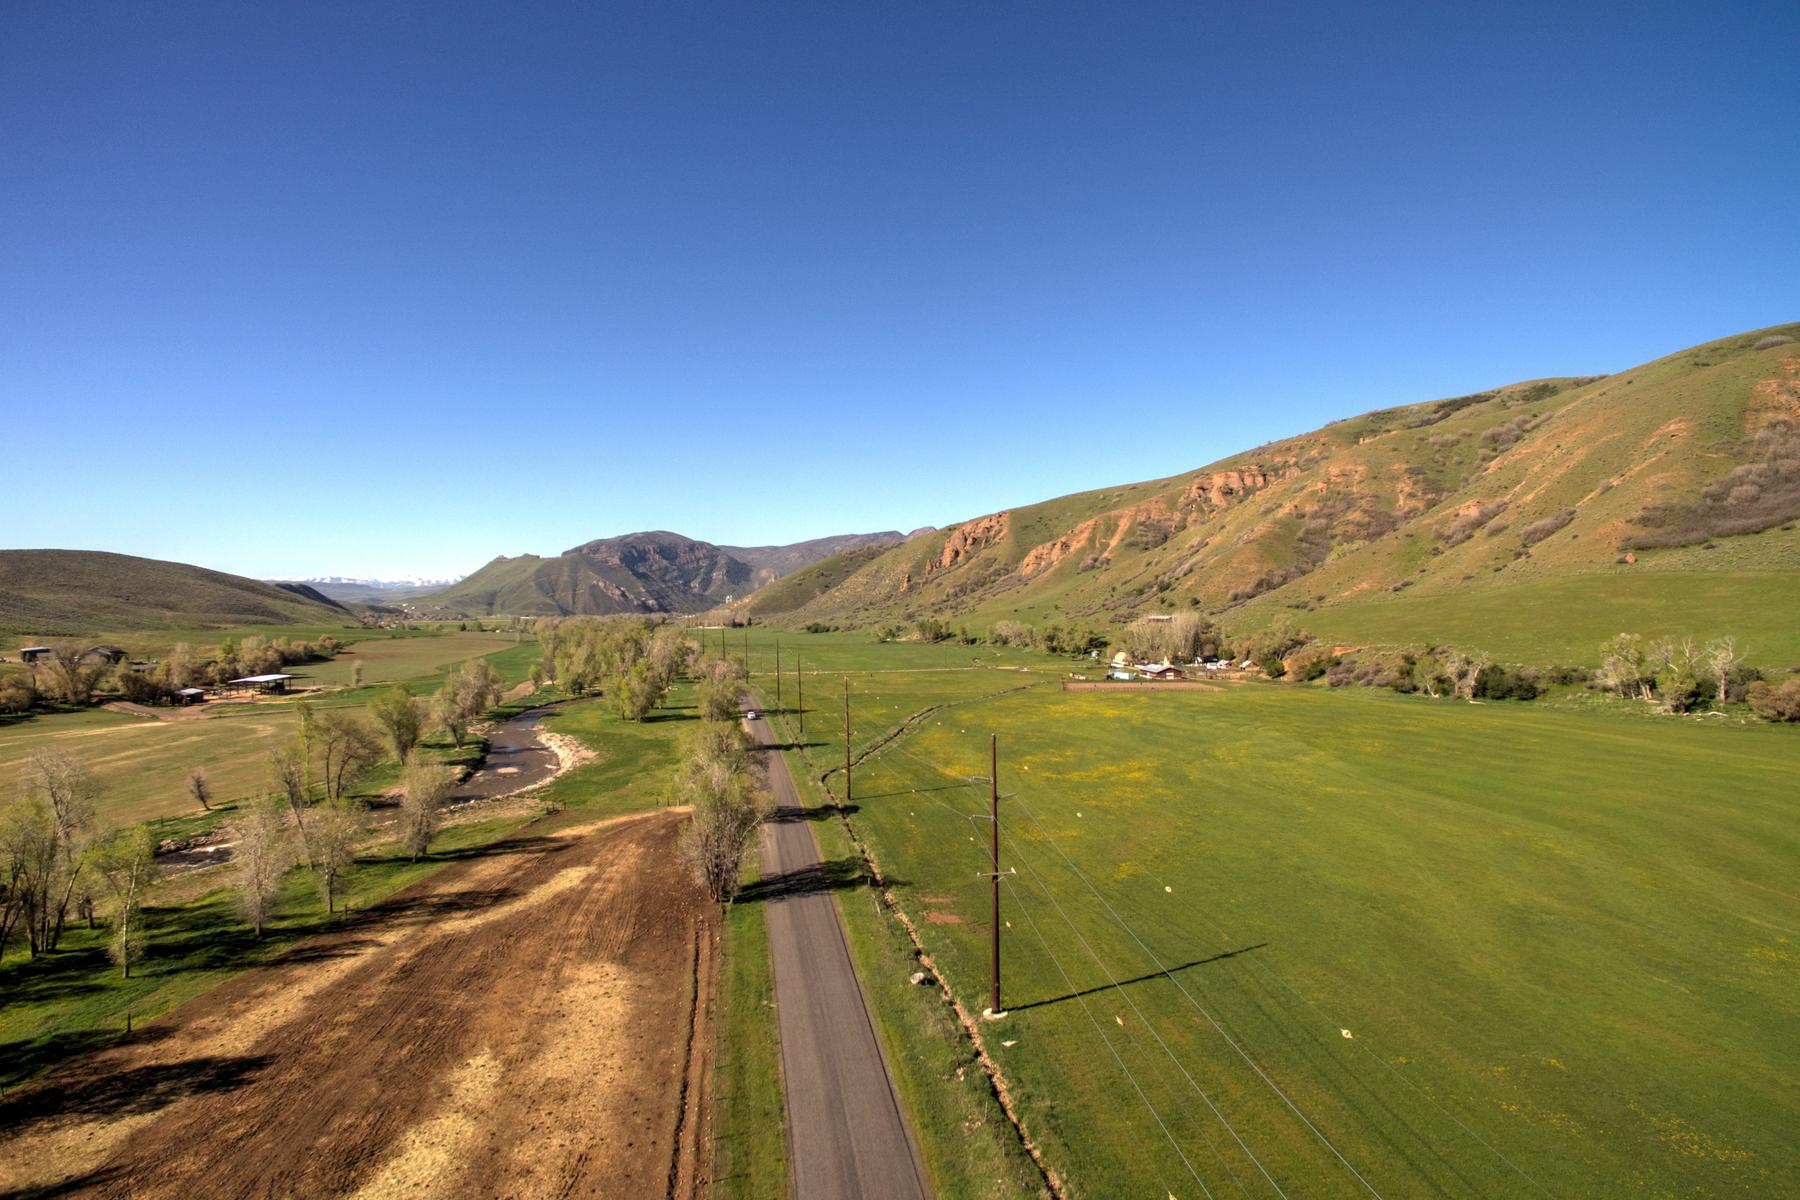 Ferme / Ranch / Plantation pour l Vente à Peaceful 21.42 Acre Farm Parcel in Croydon That is Close to Everything! 21.42 Acres Croydon Croydon, Utah 84018 États-Unis